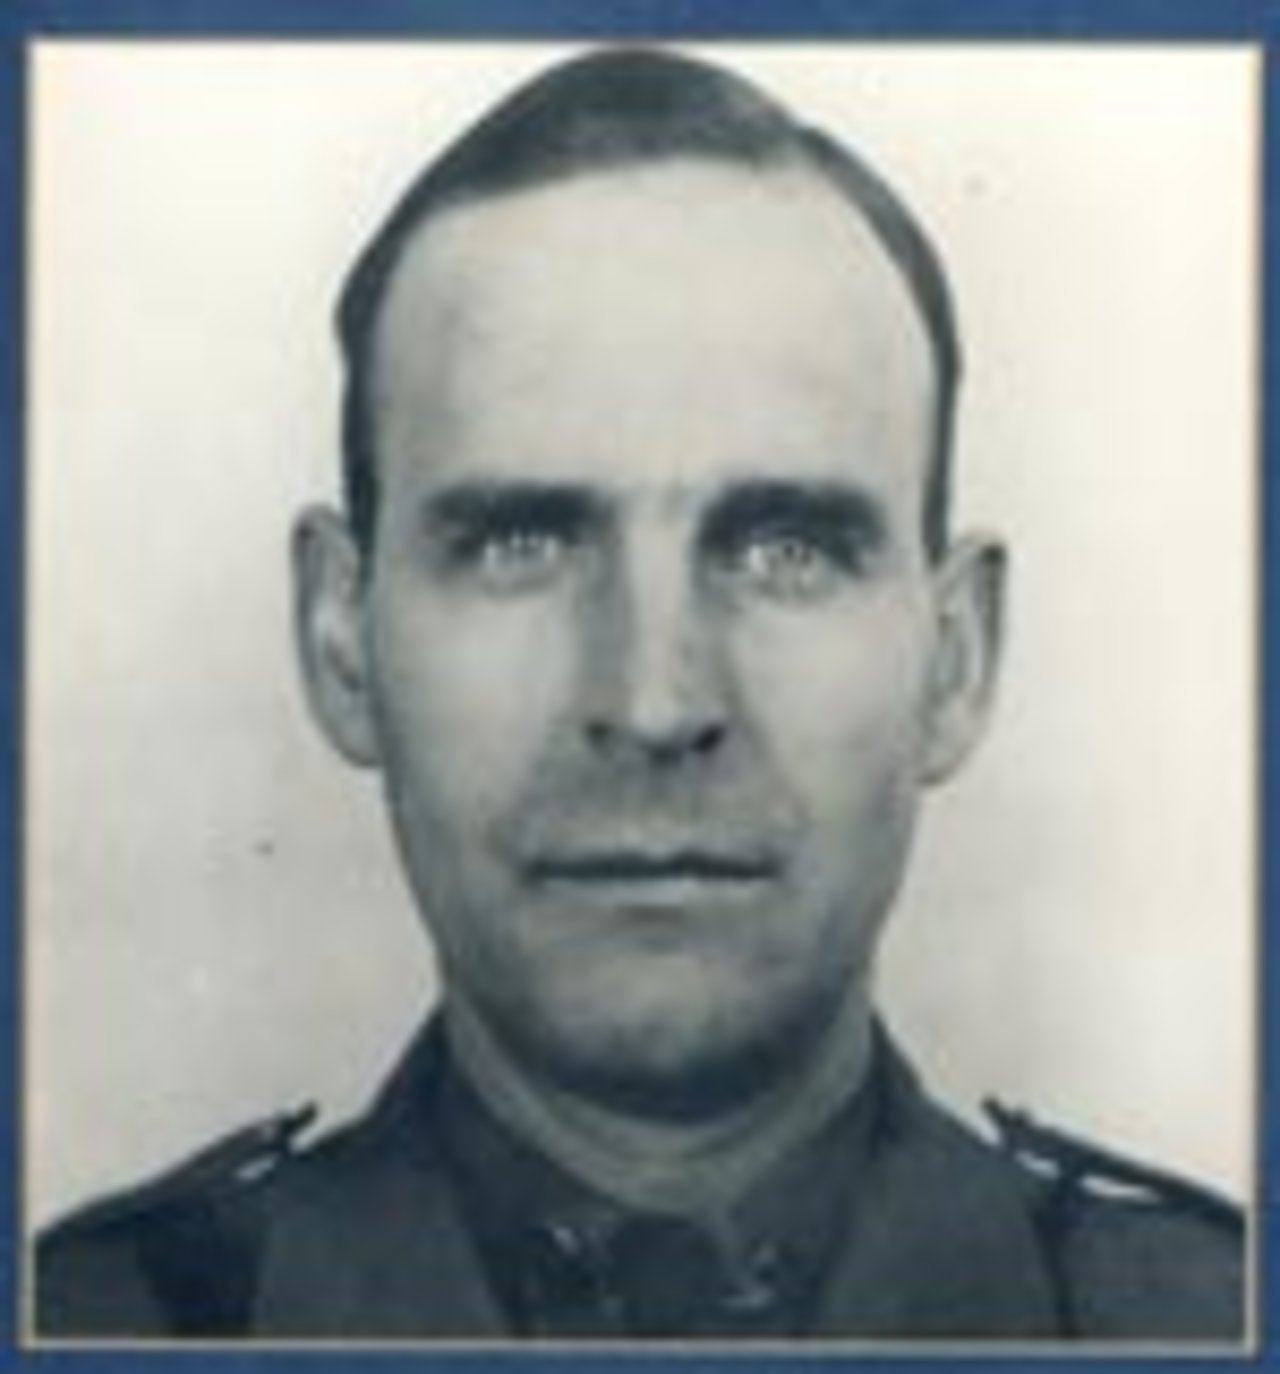 "Sergeant Harry A. Adams, 55, died on September 1, 1951, while directing traffic at the scene of an accident. Sergeant Adams, in charge of an accident investigation on Sawyer Road near Albion, was assisting with traffic control when a motorist passing through the accident scene struck and killed him.  Sergeant Adams had a lengthy career with the Division of State Police at Troop ""A"". He was the Albion Station Commander at the time of his death."